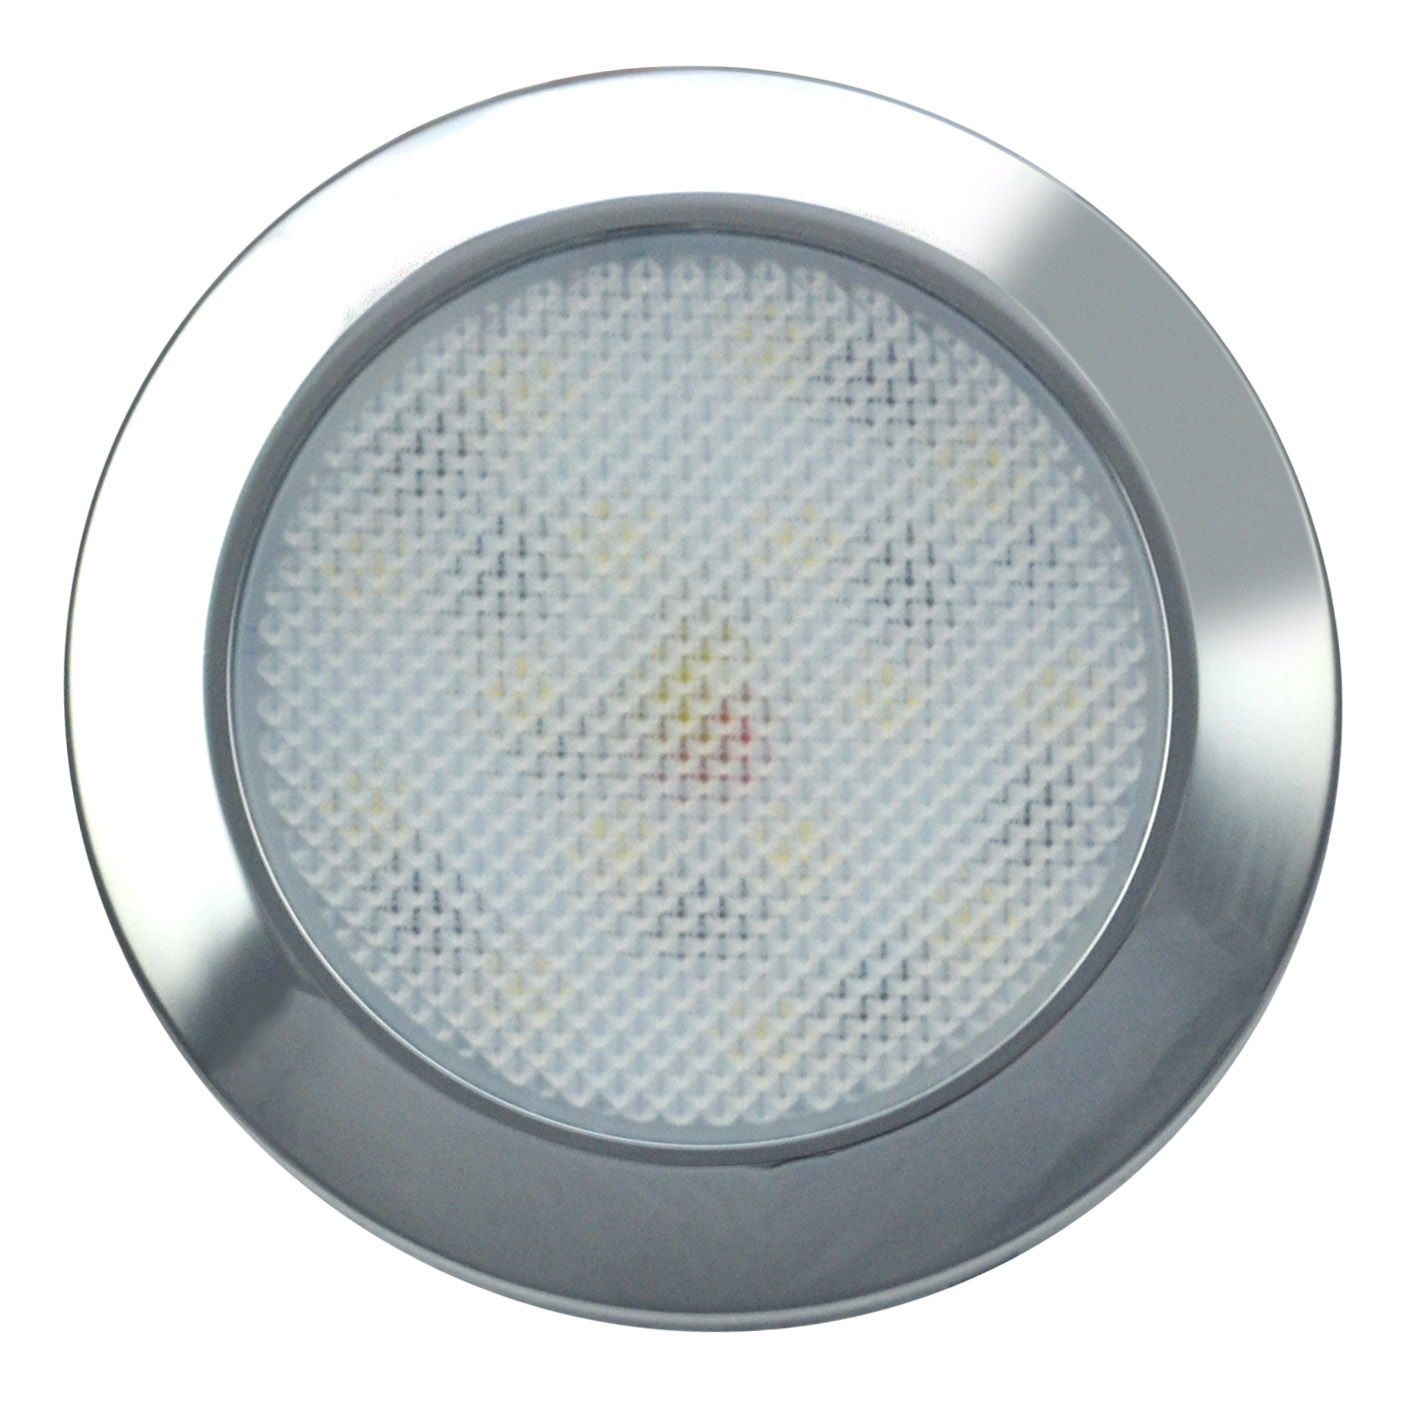 LED Autolamps Low profile round interior lamps